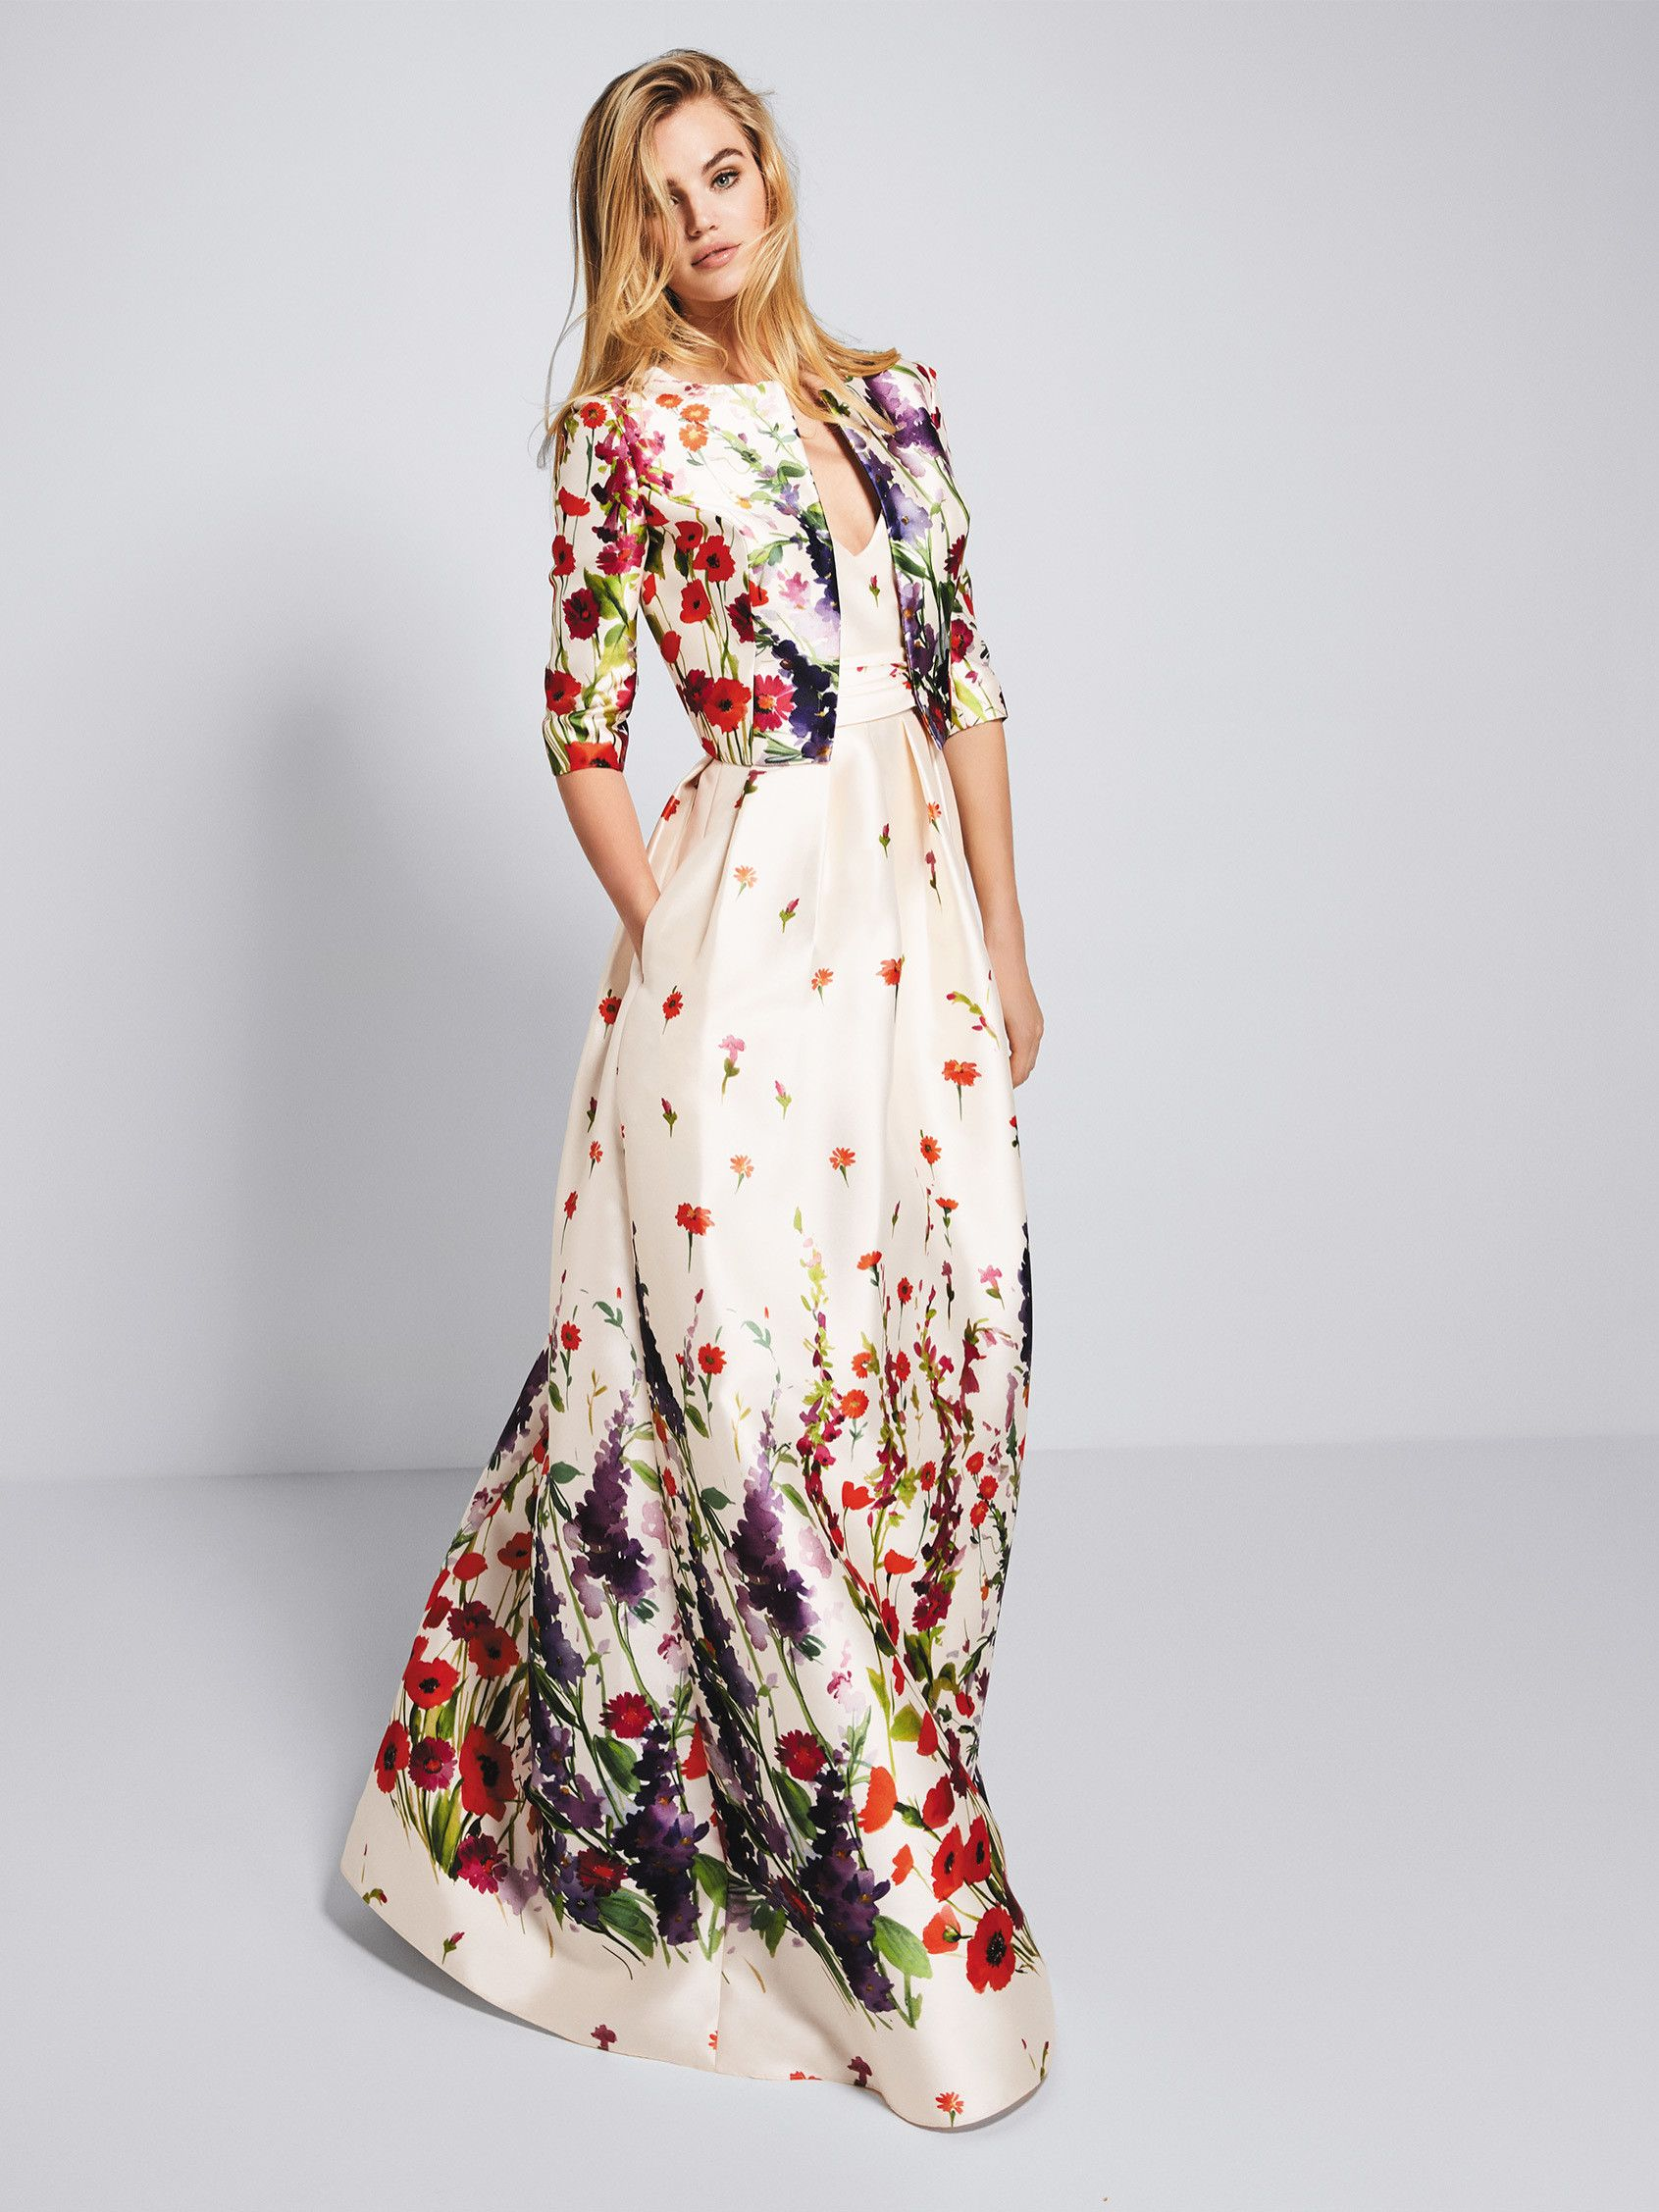 Robe de soiree theme boheme chic